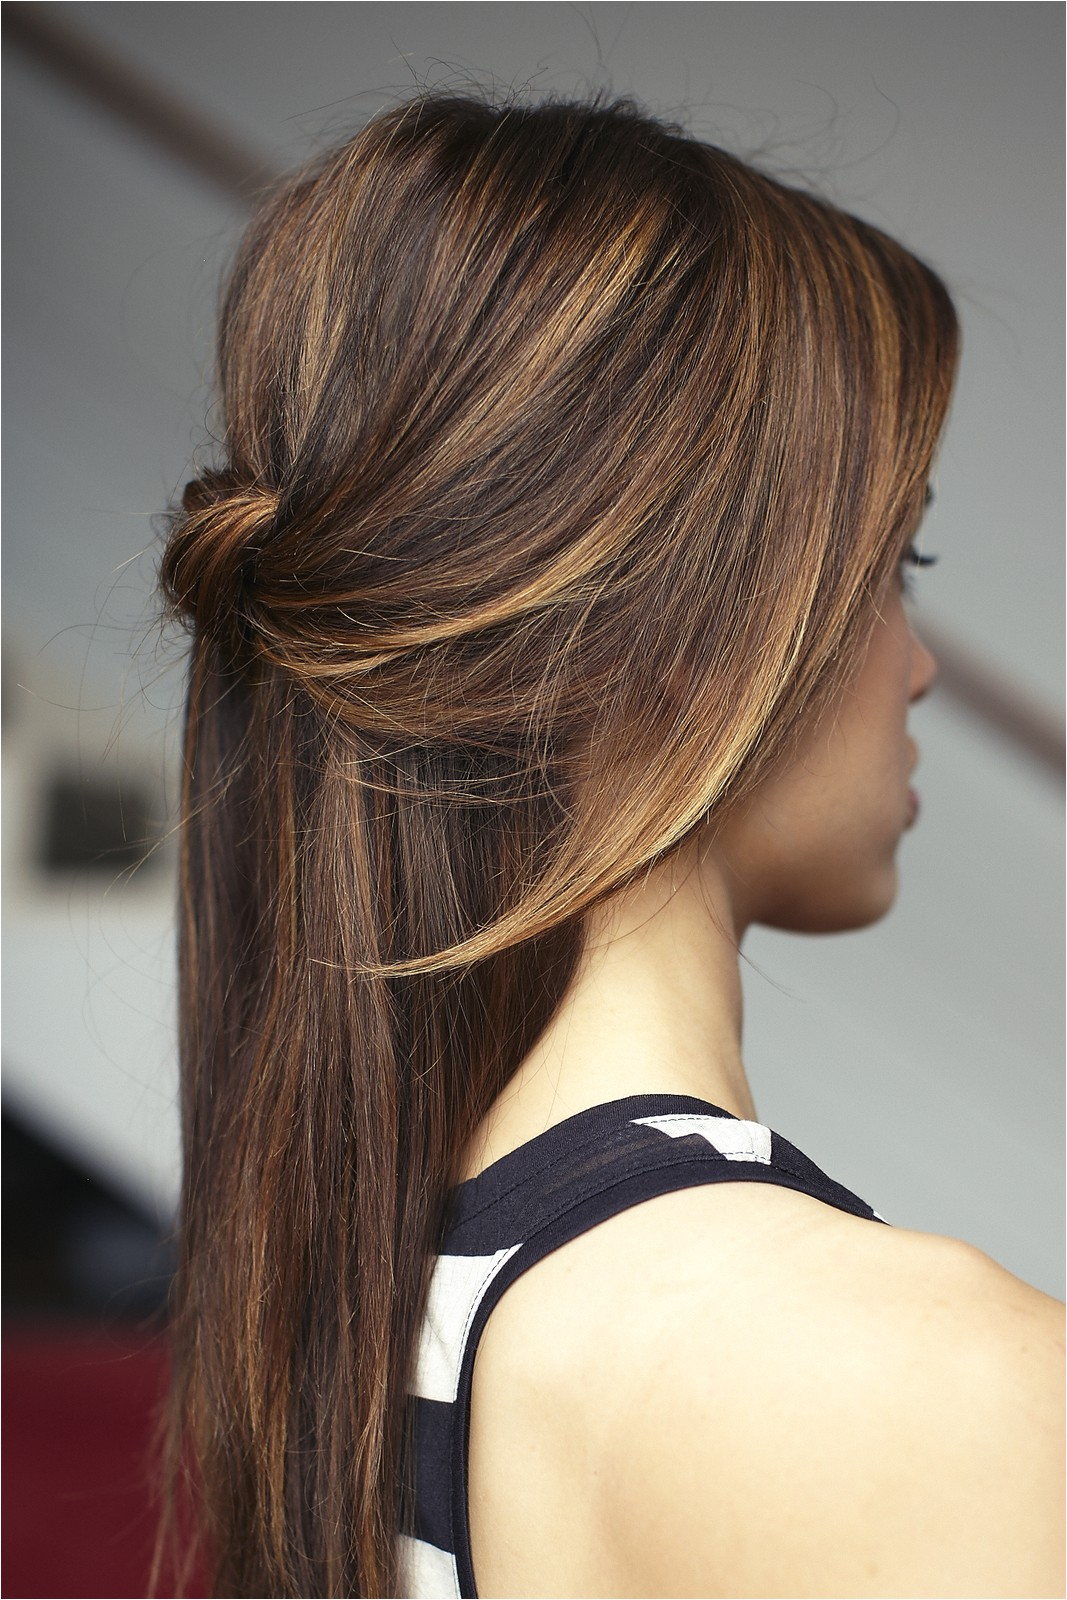 10 special hairstyles for a night out